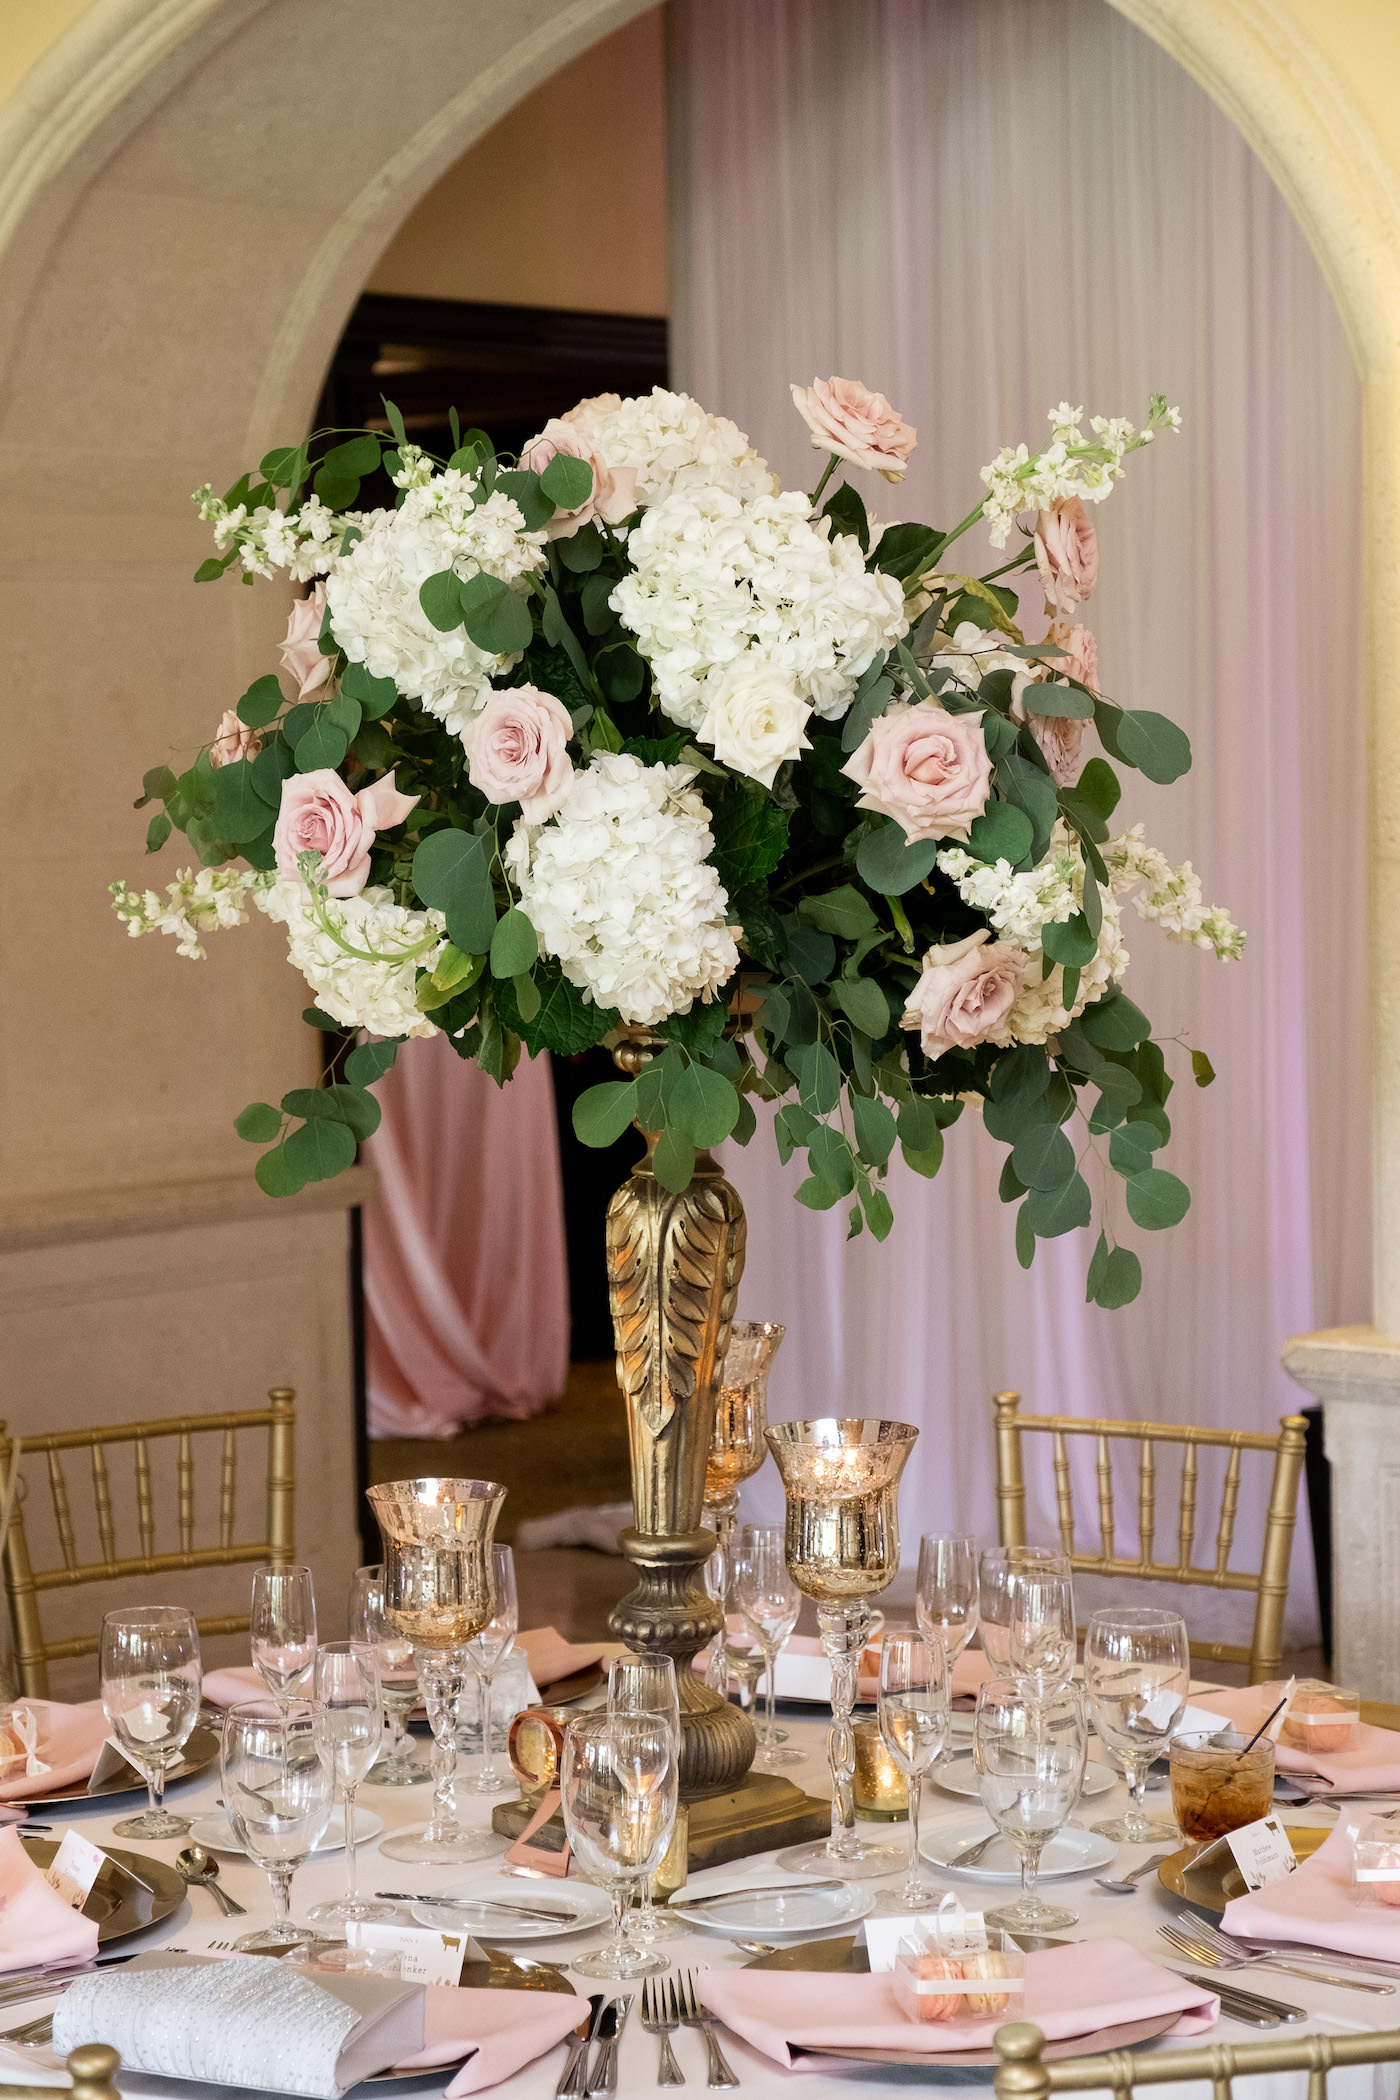 Wedding Reception Table With Blush Pink Napkins On Gold Charger Plates And Tall Gold Candlestick Loose Floral Centerpiece Featuring Blush Pink Roses And Ivory Hydrangea With White Stock And Eucalyptus Greenery